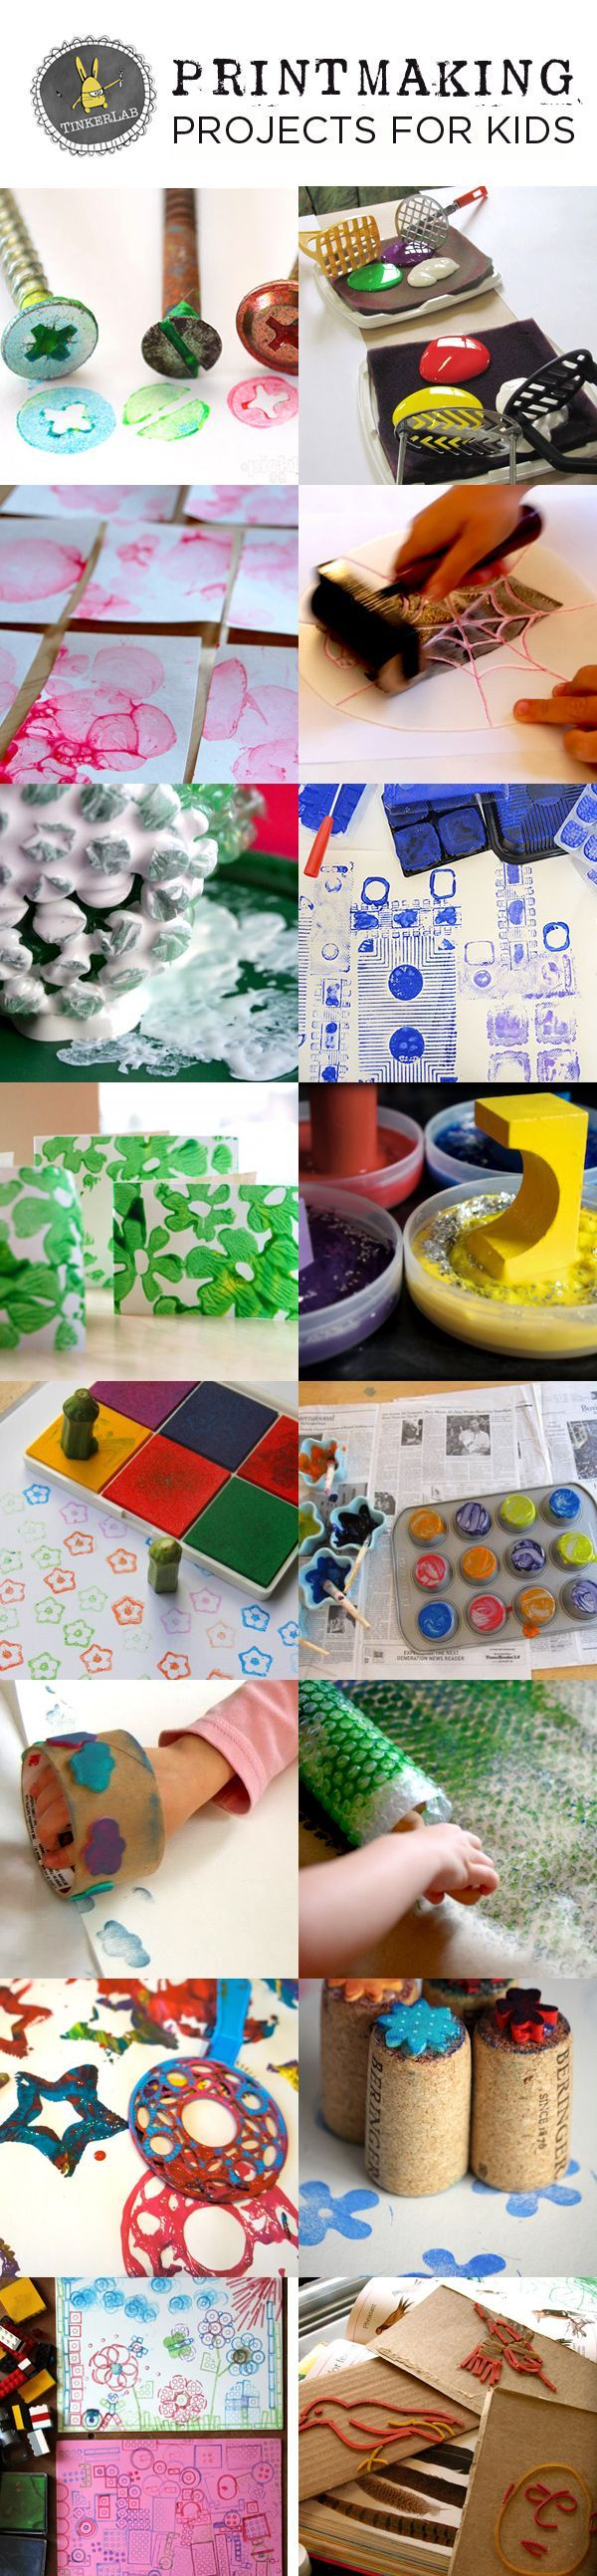 These simple printmaking projects for kids use everyday supplies and won't break your budget. Sure to please!